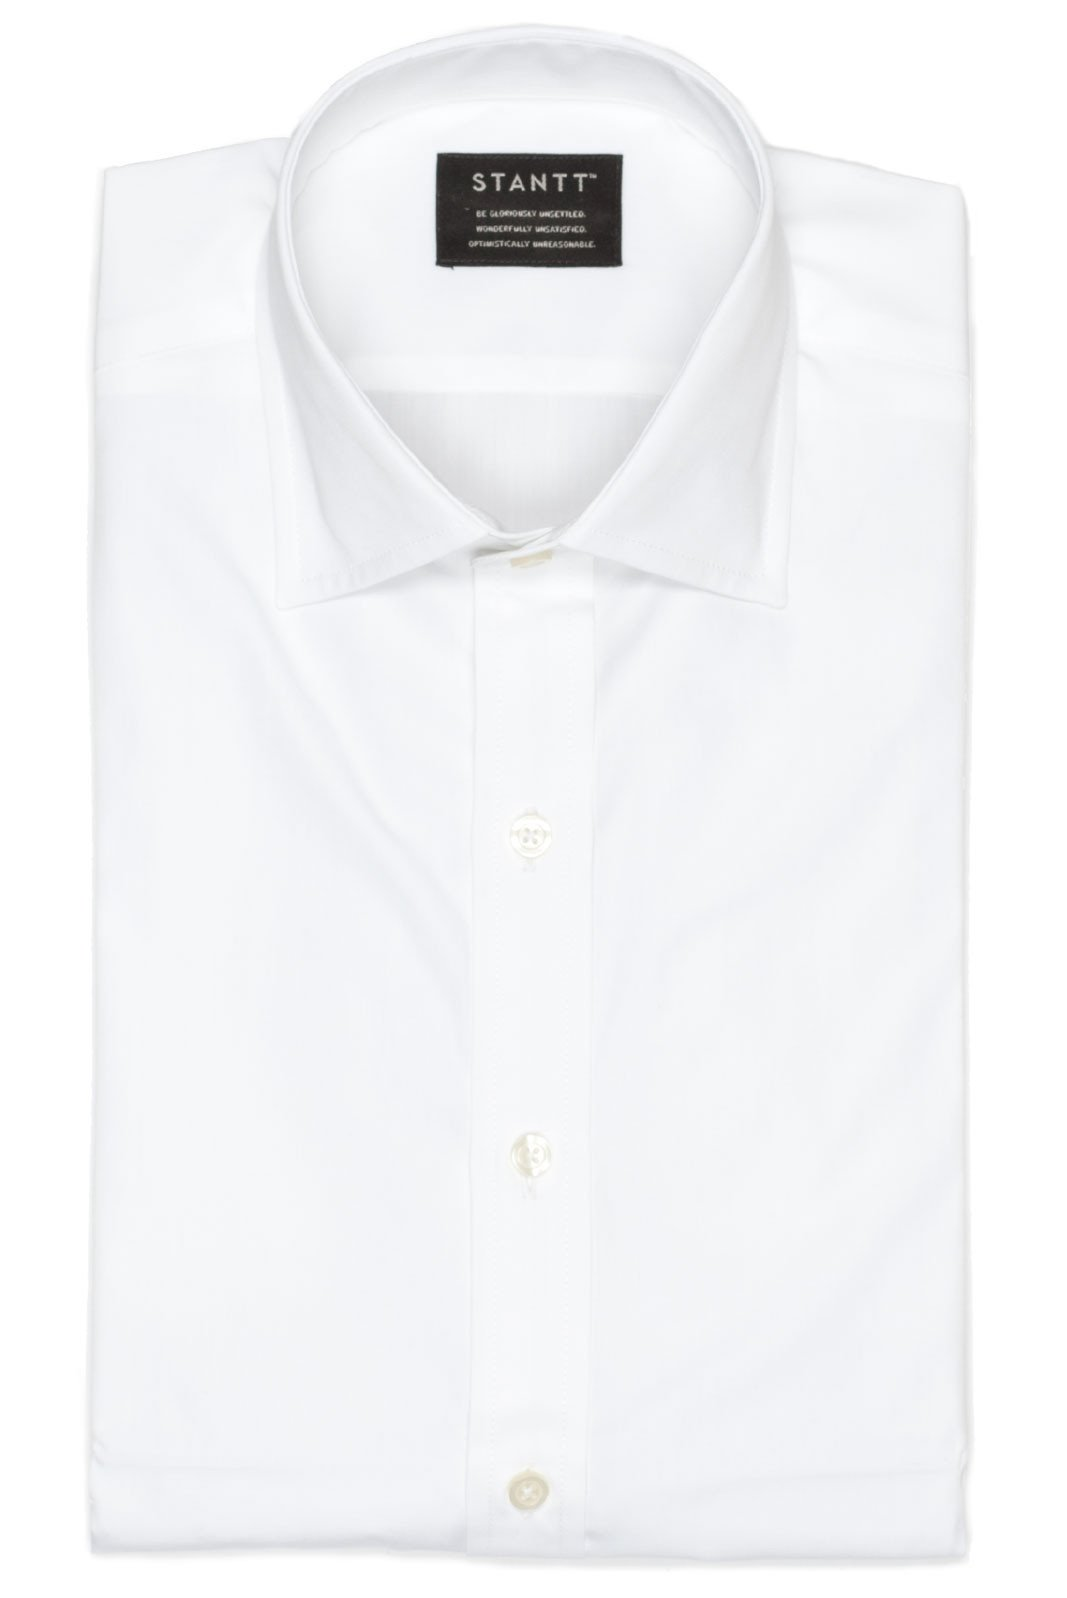 Fine White Poplin: Modified Spread Collar, Barrel Cuff